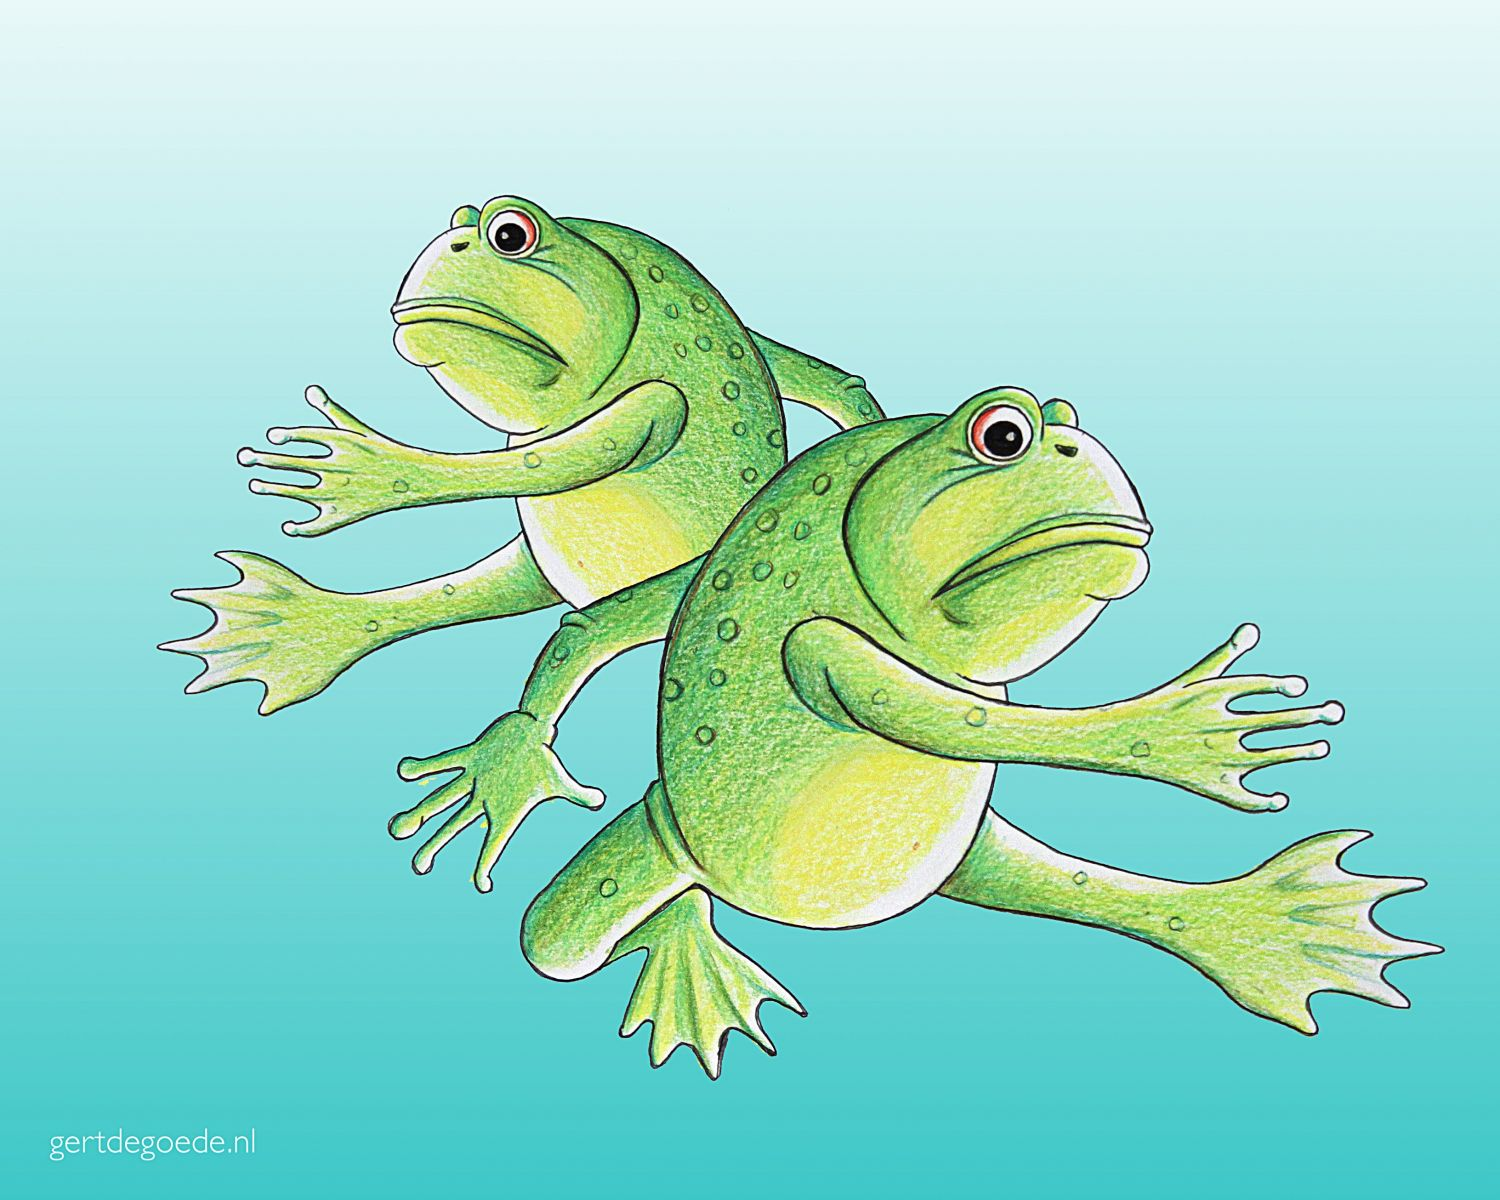 kikker frog frogs kikkers froschen #illustration #illustrator #illustratie #illustrazione #illustrazioni #ambachtelijk #ambacht #vrolijk #happy #fun #cheerful #cartoon #comic #photoedit #thumbsup #artwork #fröhlich #cheerful #gai #glædelig #lëschtegb #快活 插图 gert de goede Gert de Goede